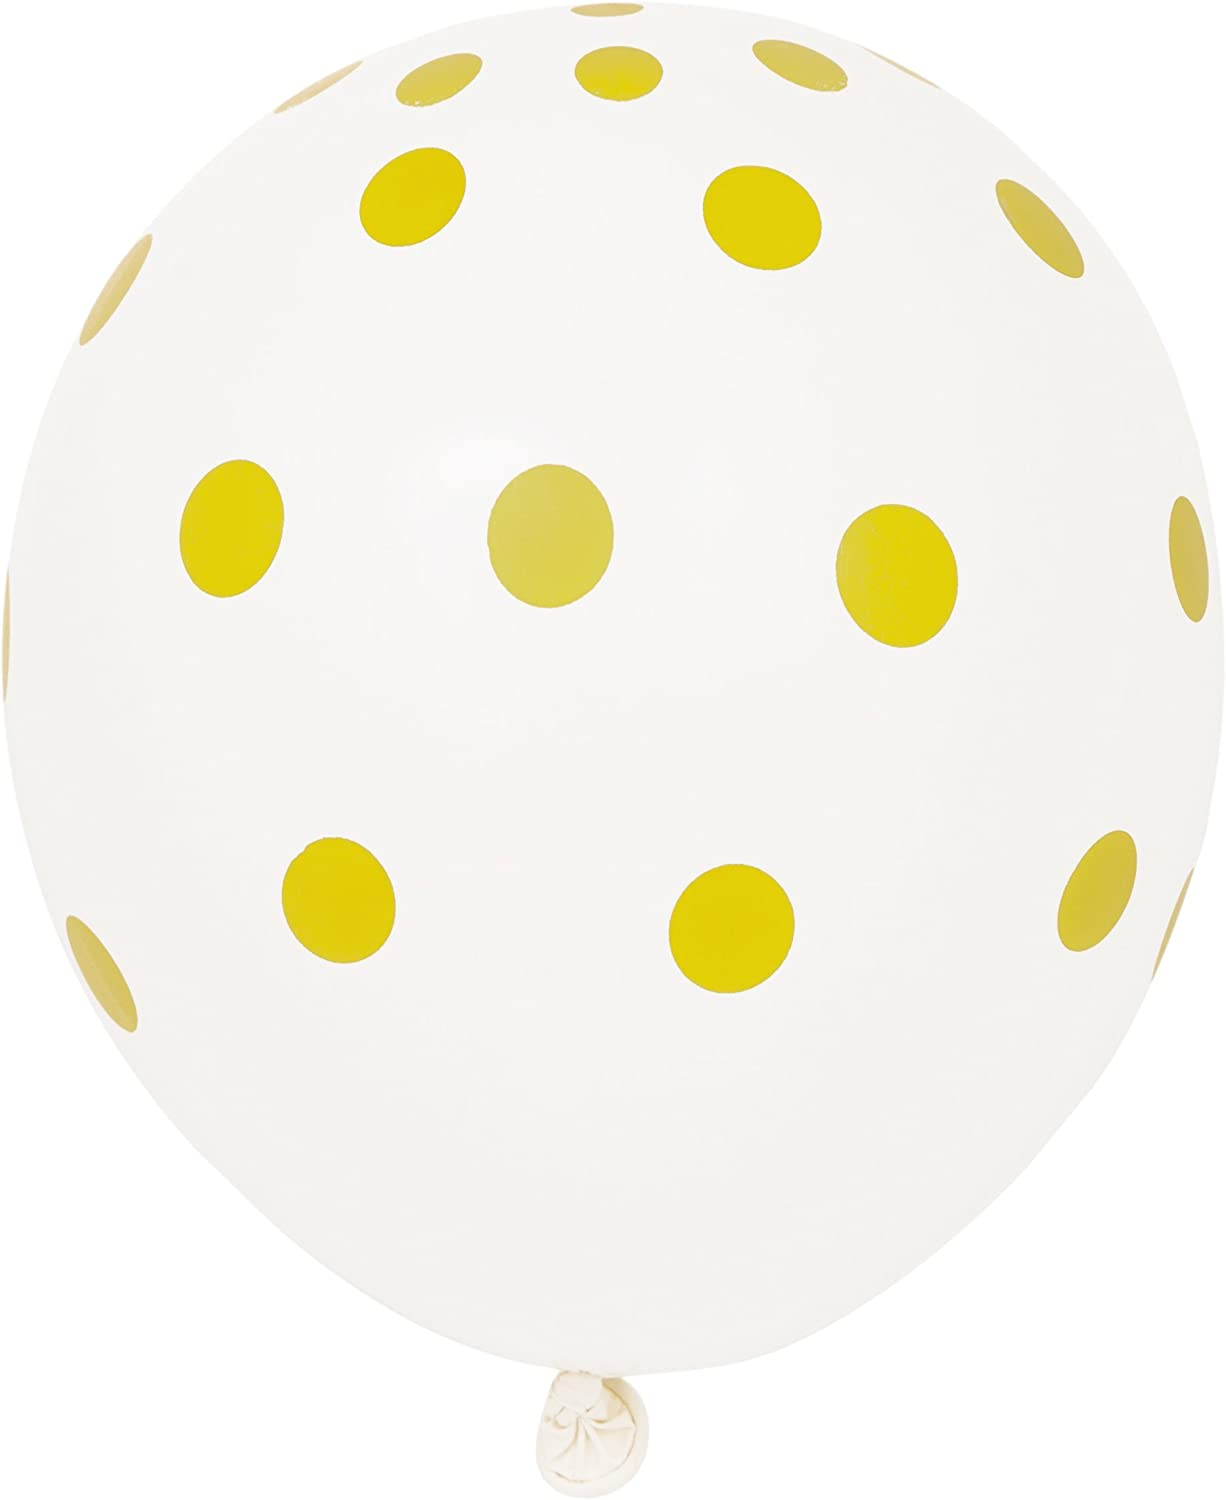 Unique Party 50258 Plastic Baby Blue Polka Dot Tablecloth 9ft x 4.5ft